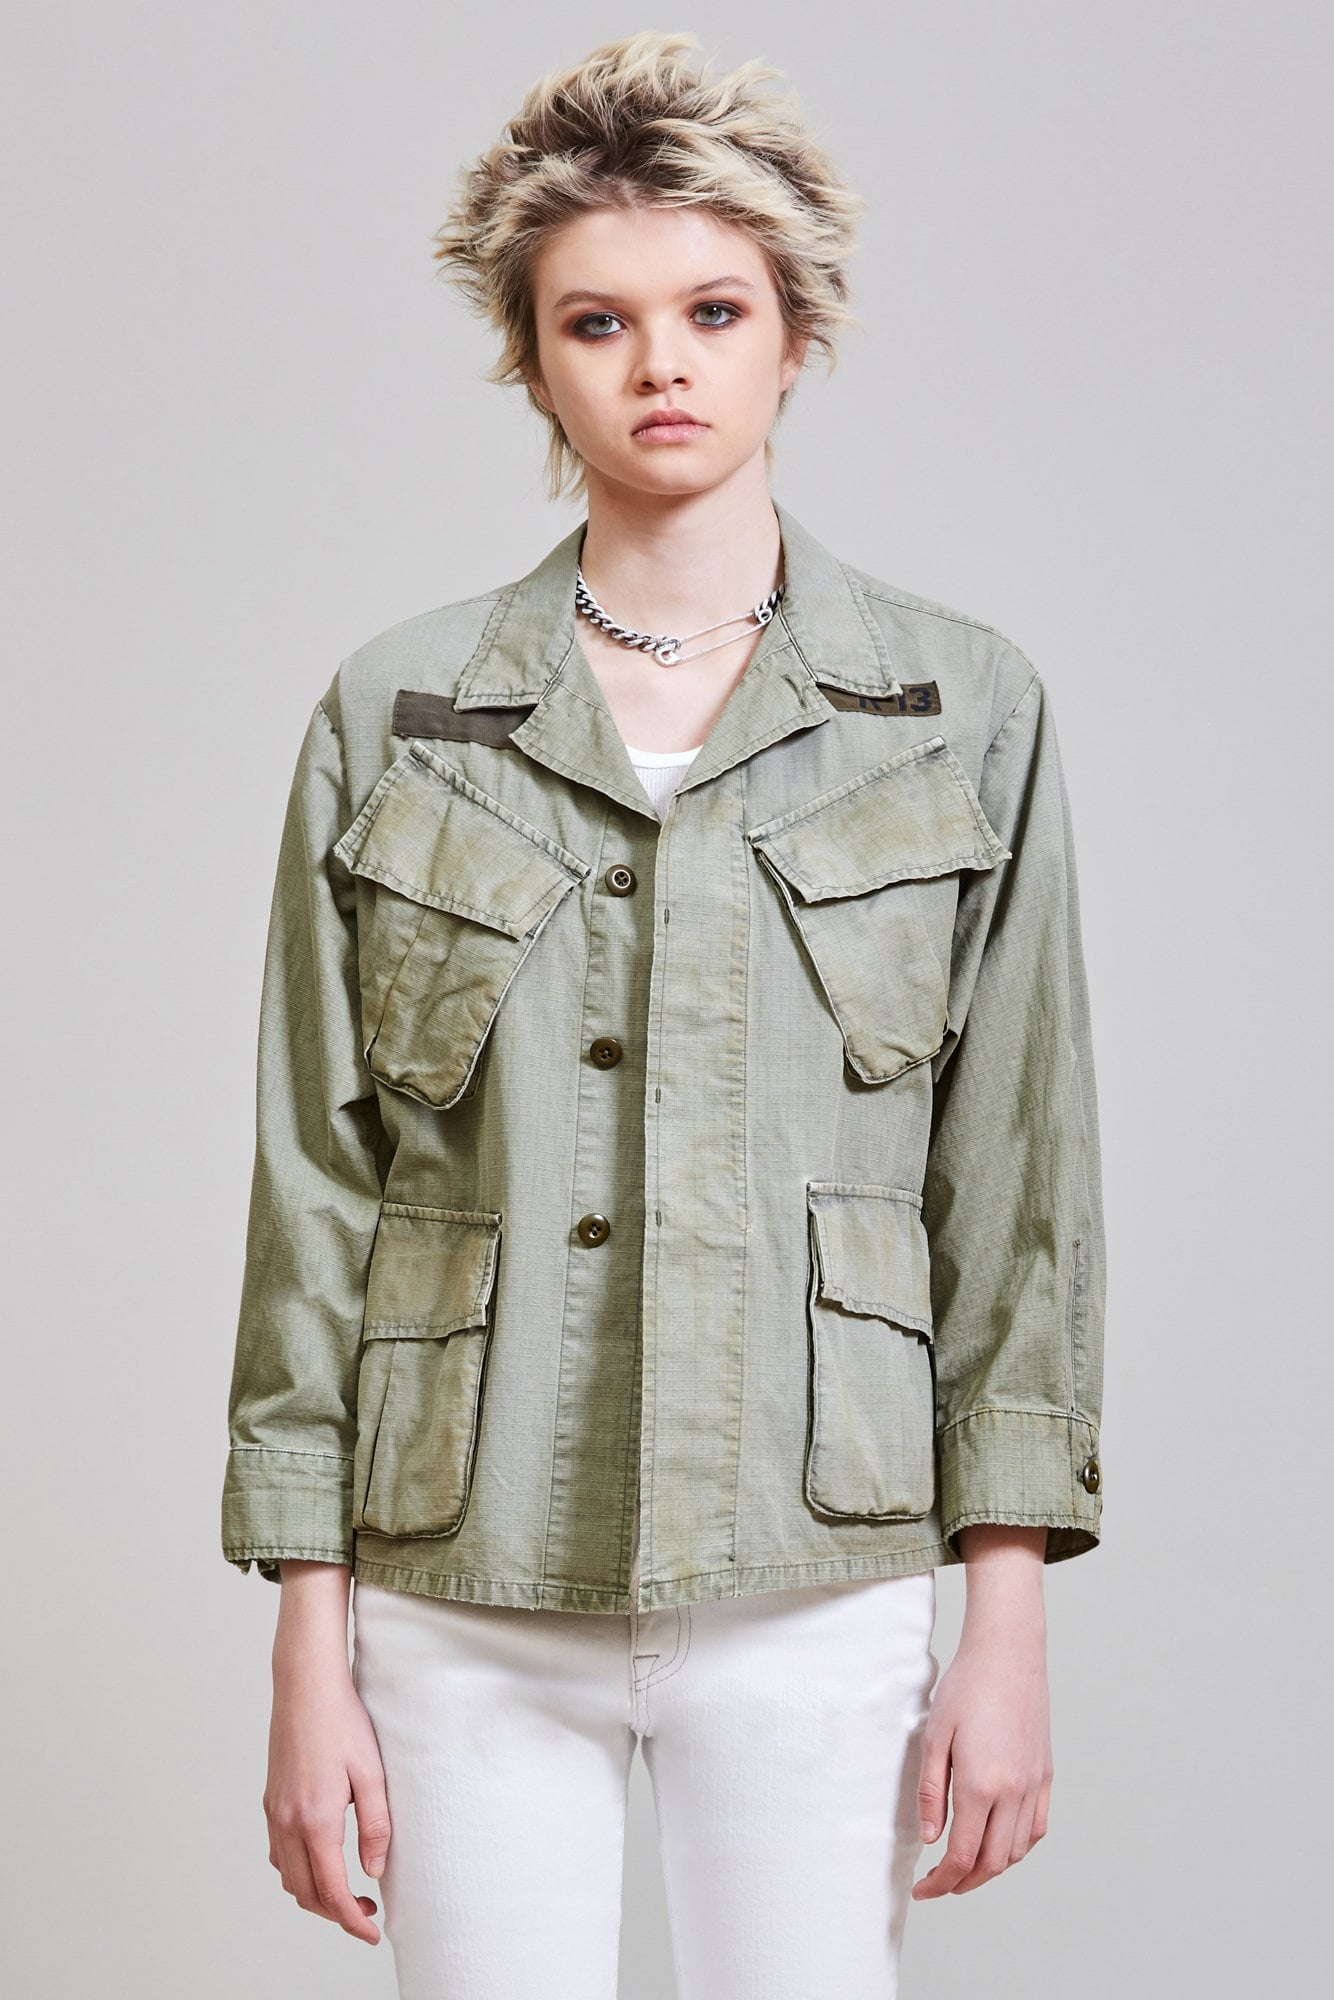 SHRUNKEN ARMY JACKET